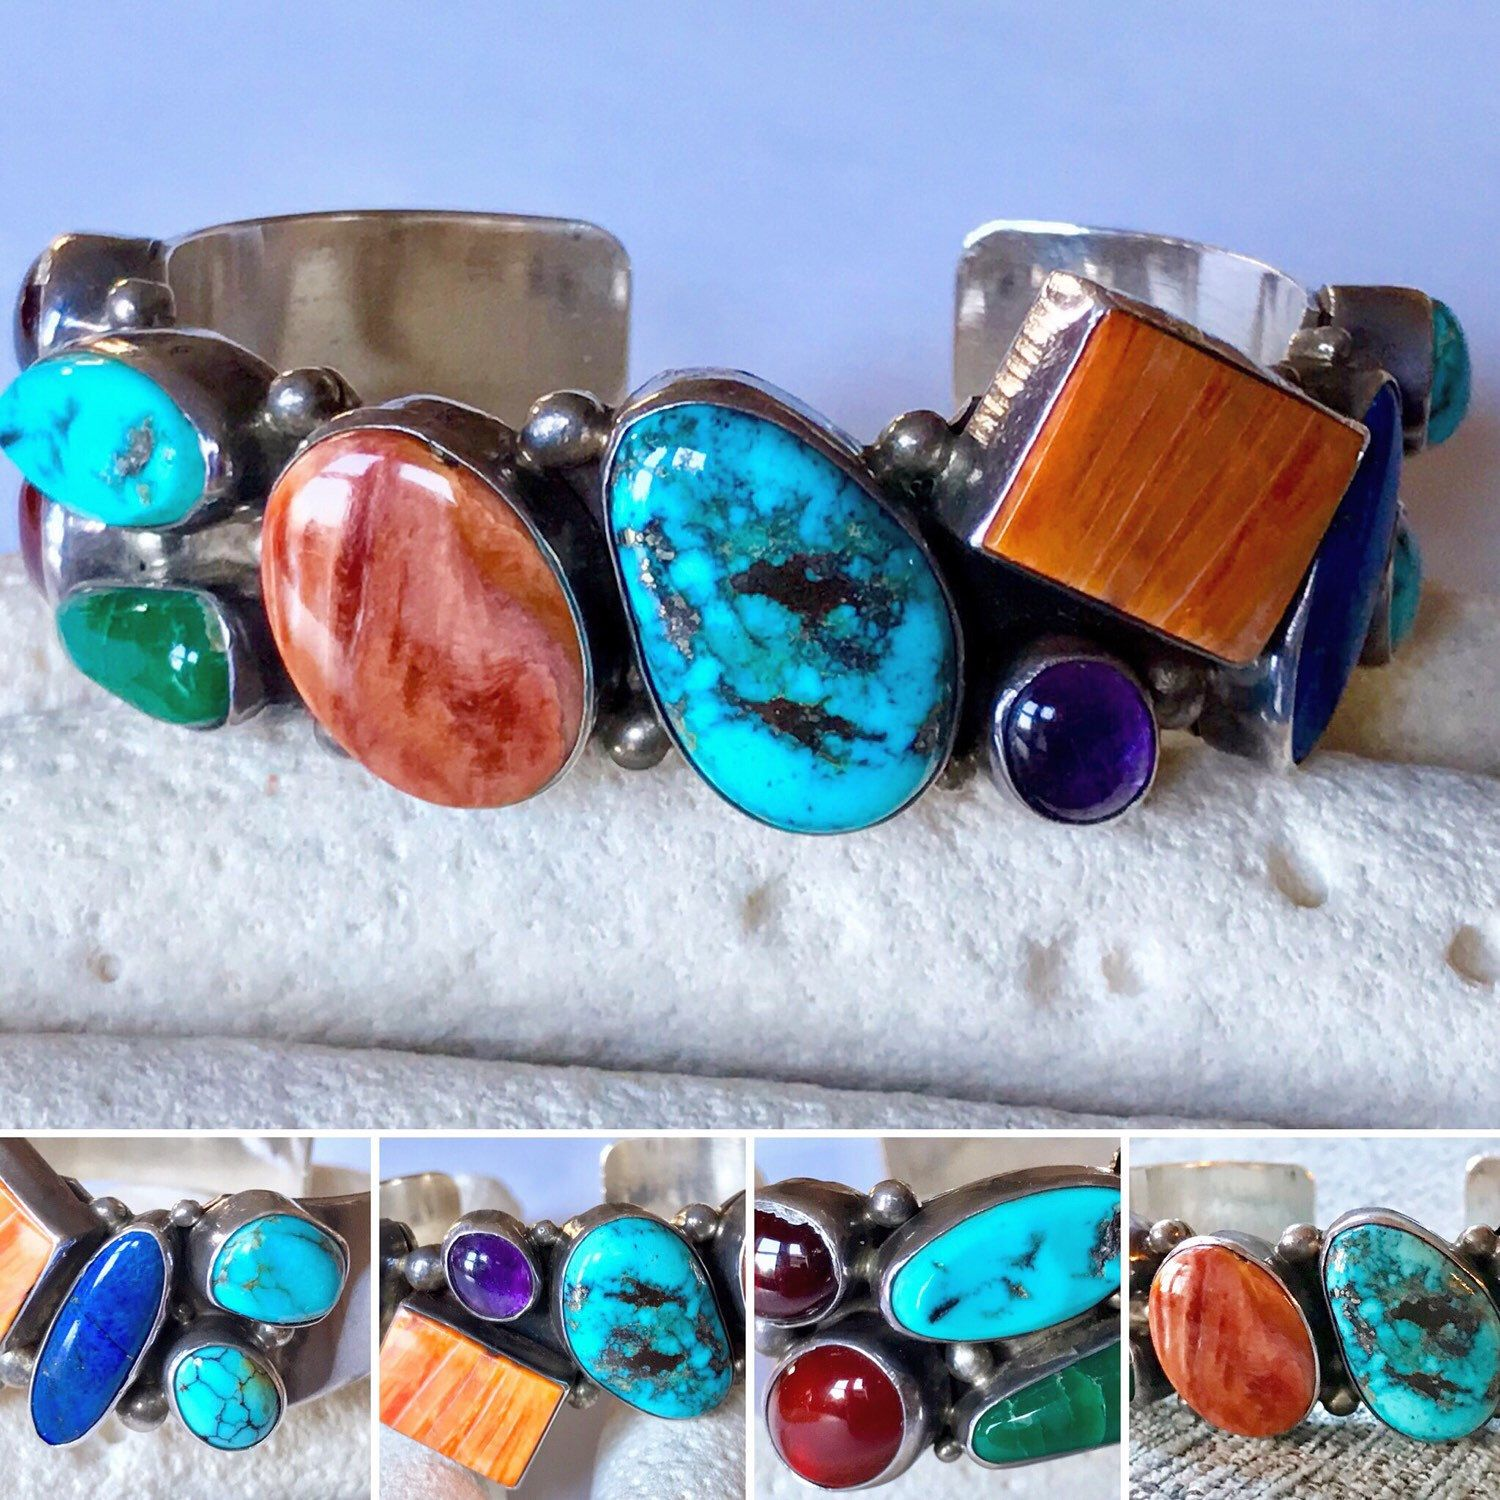 Boho Hippie Style Bracelet Old Jewelry Vintage Bracelet Vintage Jewelry for Her Silver colored Bracelet with Multicolored Stones